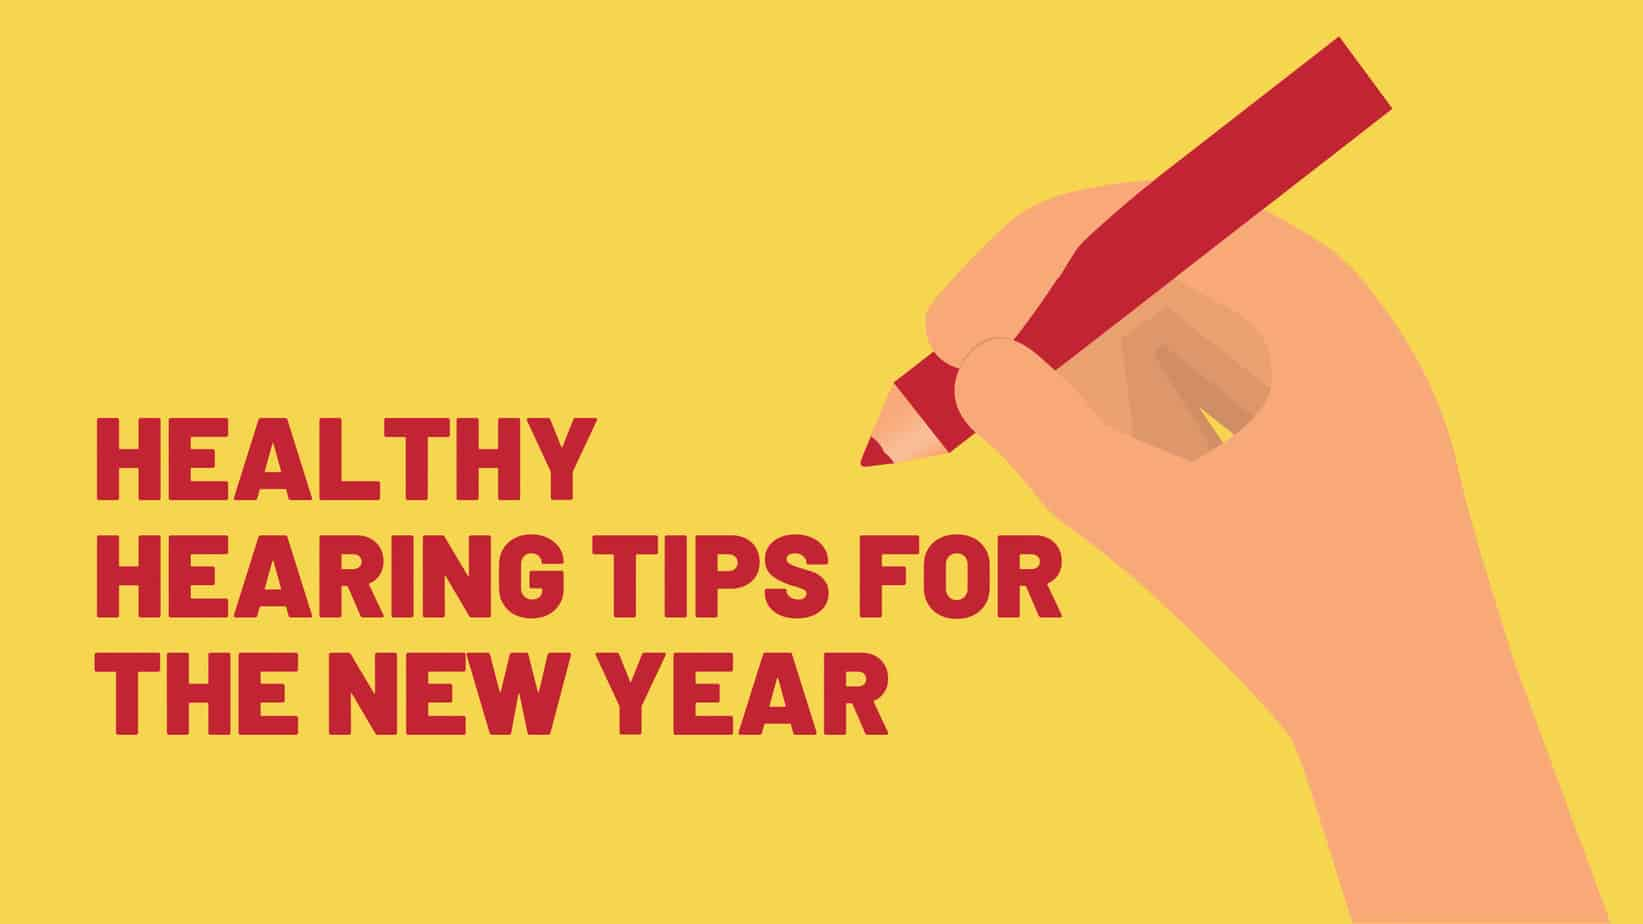 Healthy Hearing Tips for the New Year